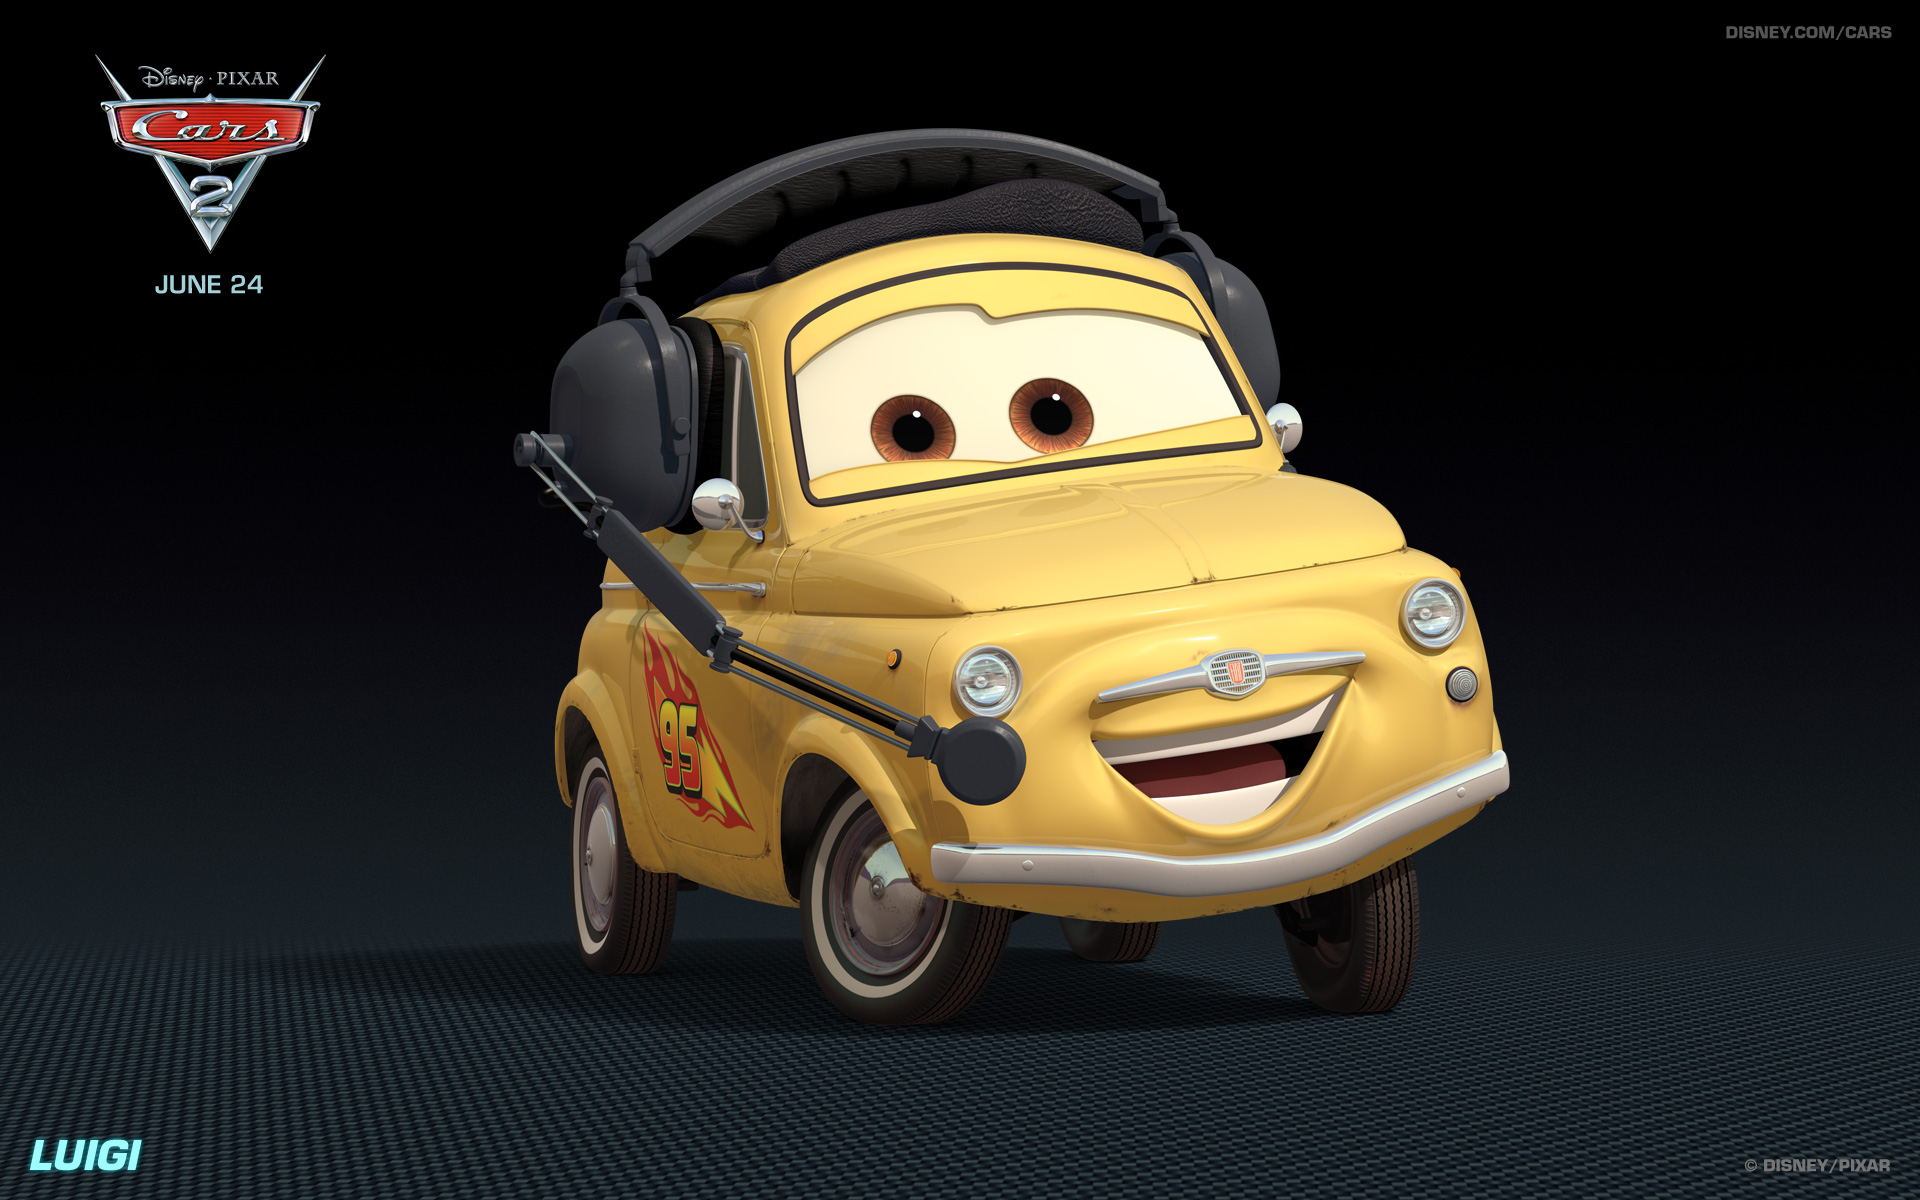 Cars 2 Cartoon Characters Names : Image cars luigi g pixar wiki fandom powered by